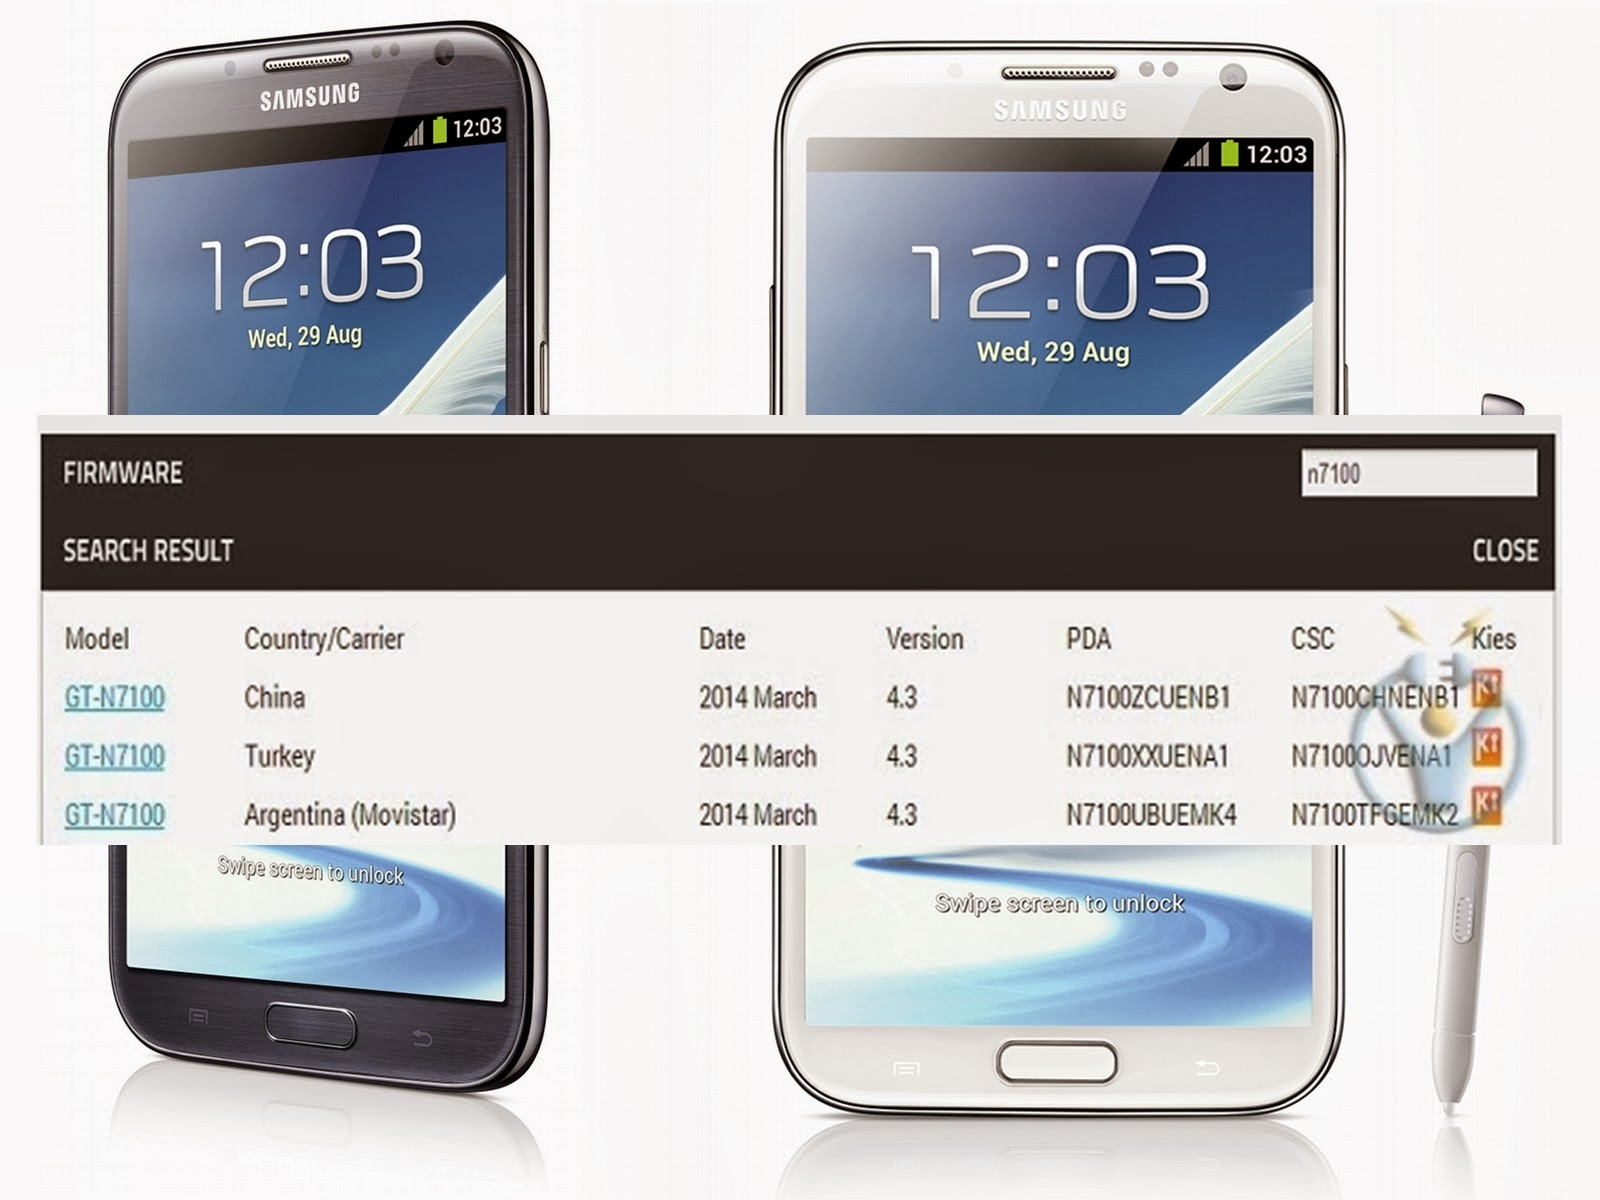 galaxy note 2 android 4.3 güncellemesi